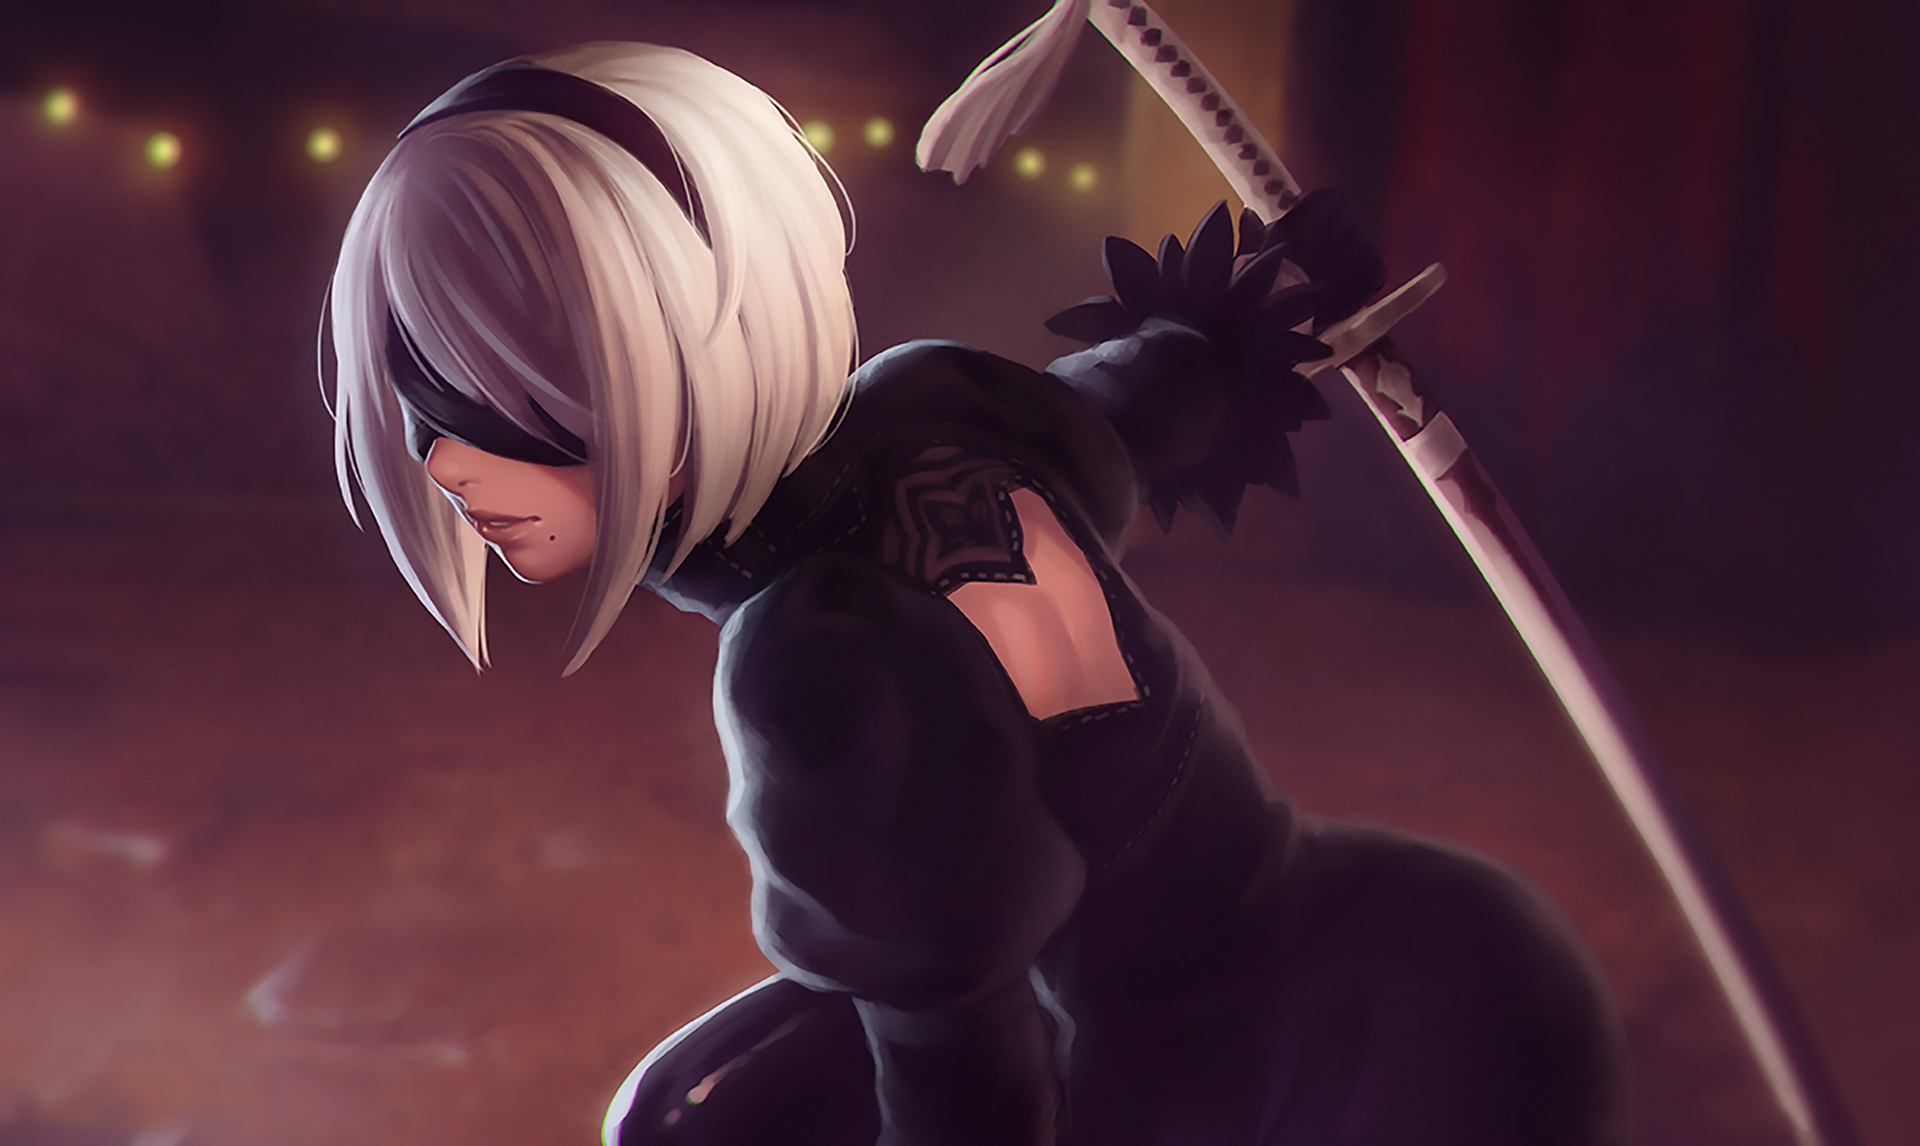 Nier Automata Fantasy Game Art Full Hd Wallpaper: YoRHa NO 2 Type B Nier Automata Artwork, HD Games, 4k